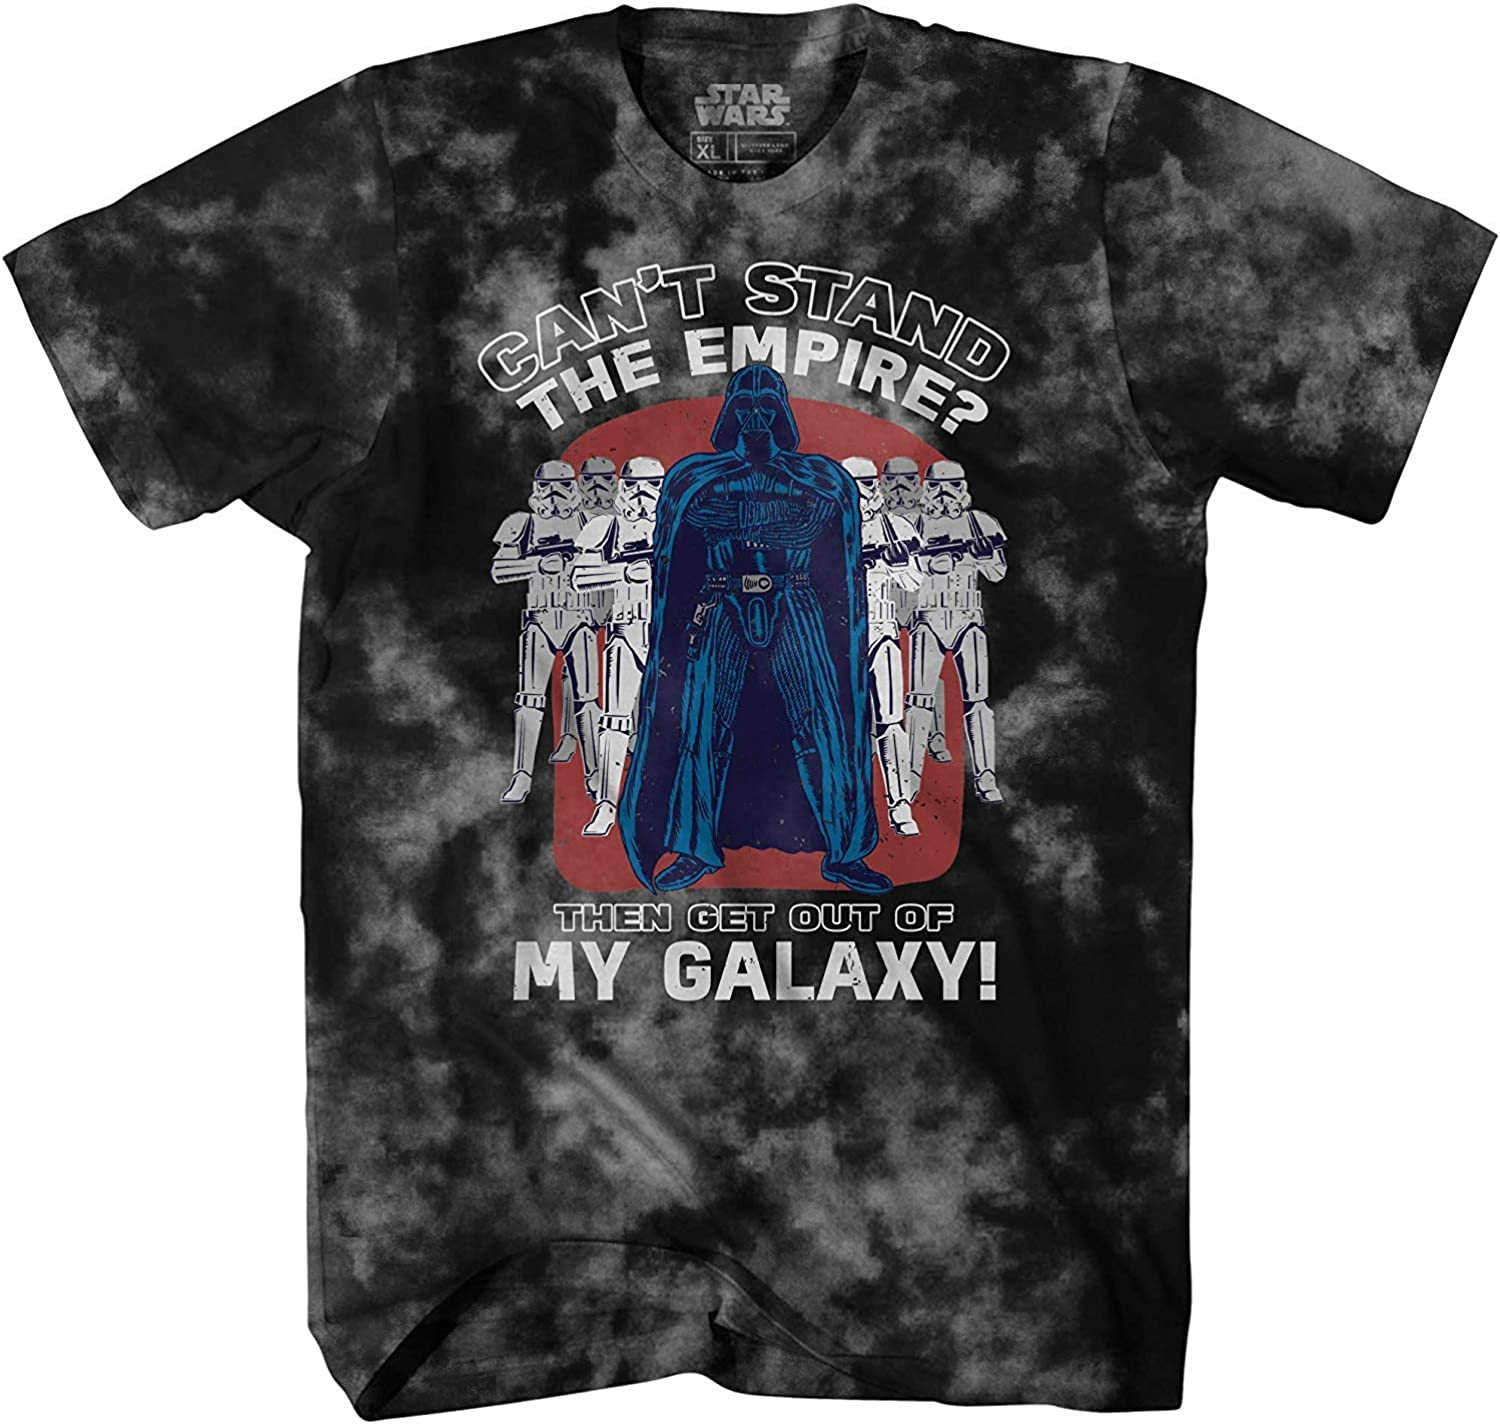 Star Wars Darth Vader Empire Galaxy Funny Humor Pun Adult Tee Graphic T-Shirt for Men Tshirt